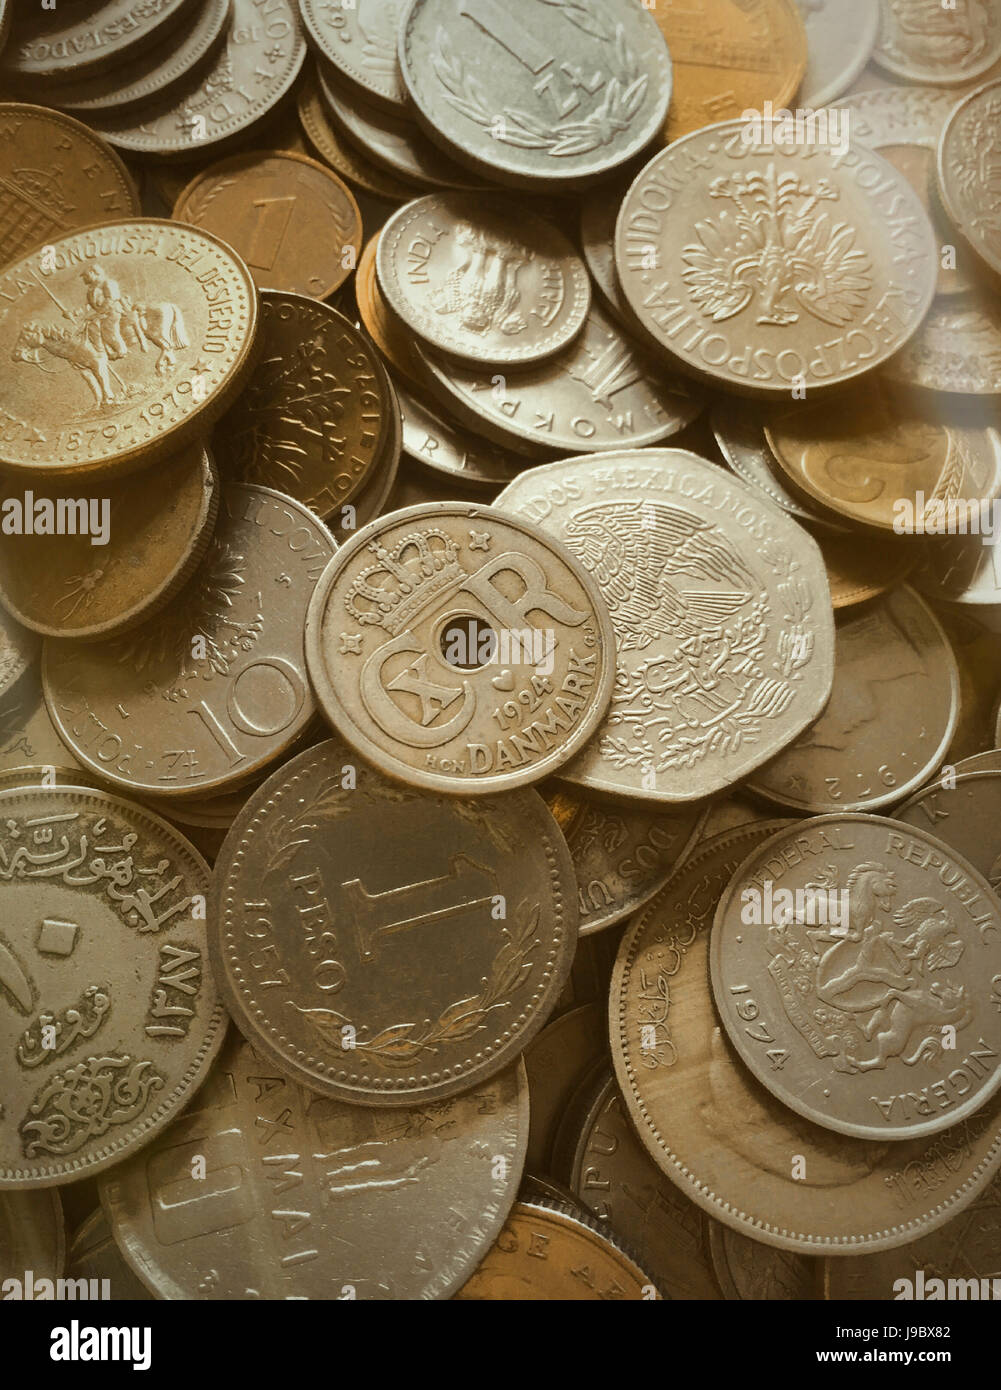 Multiple International Coins Stock Photo: 143476930 - Alamy